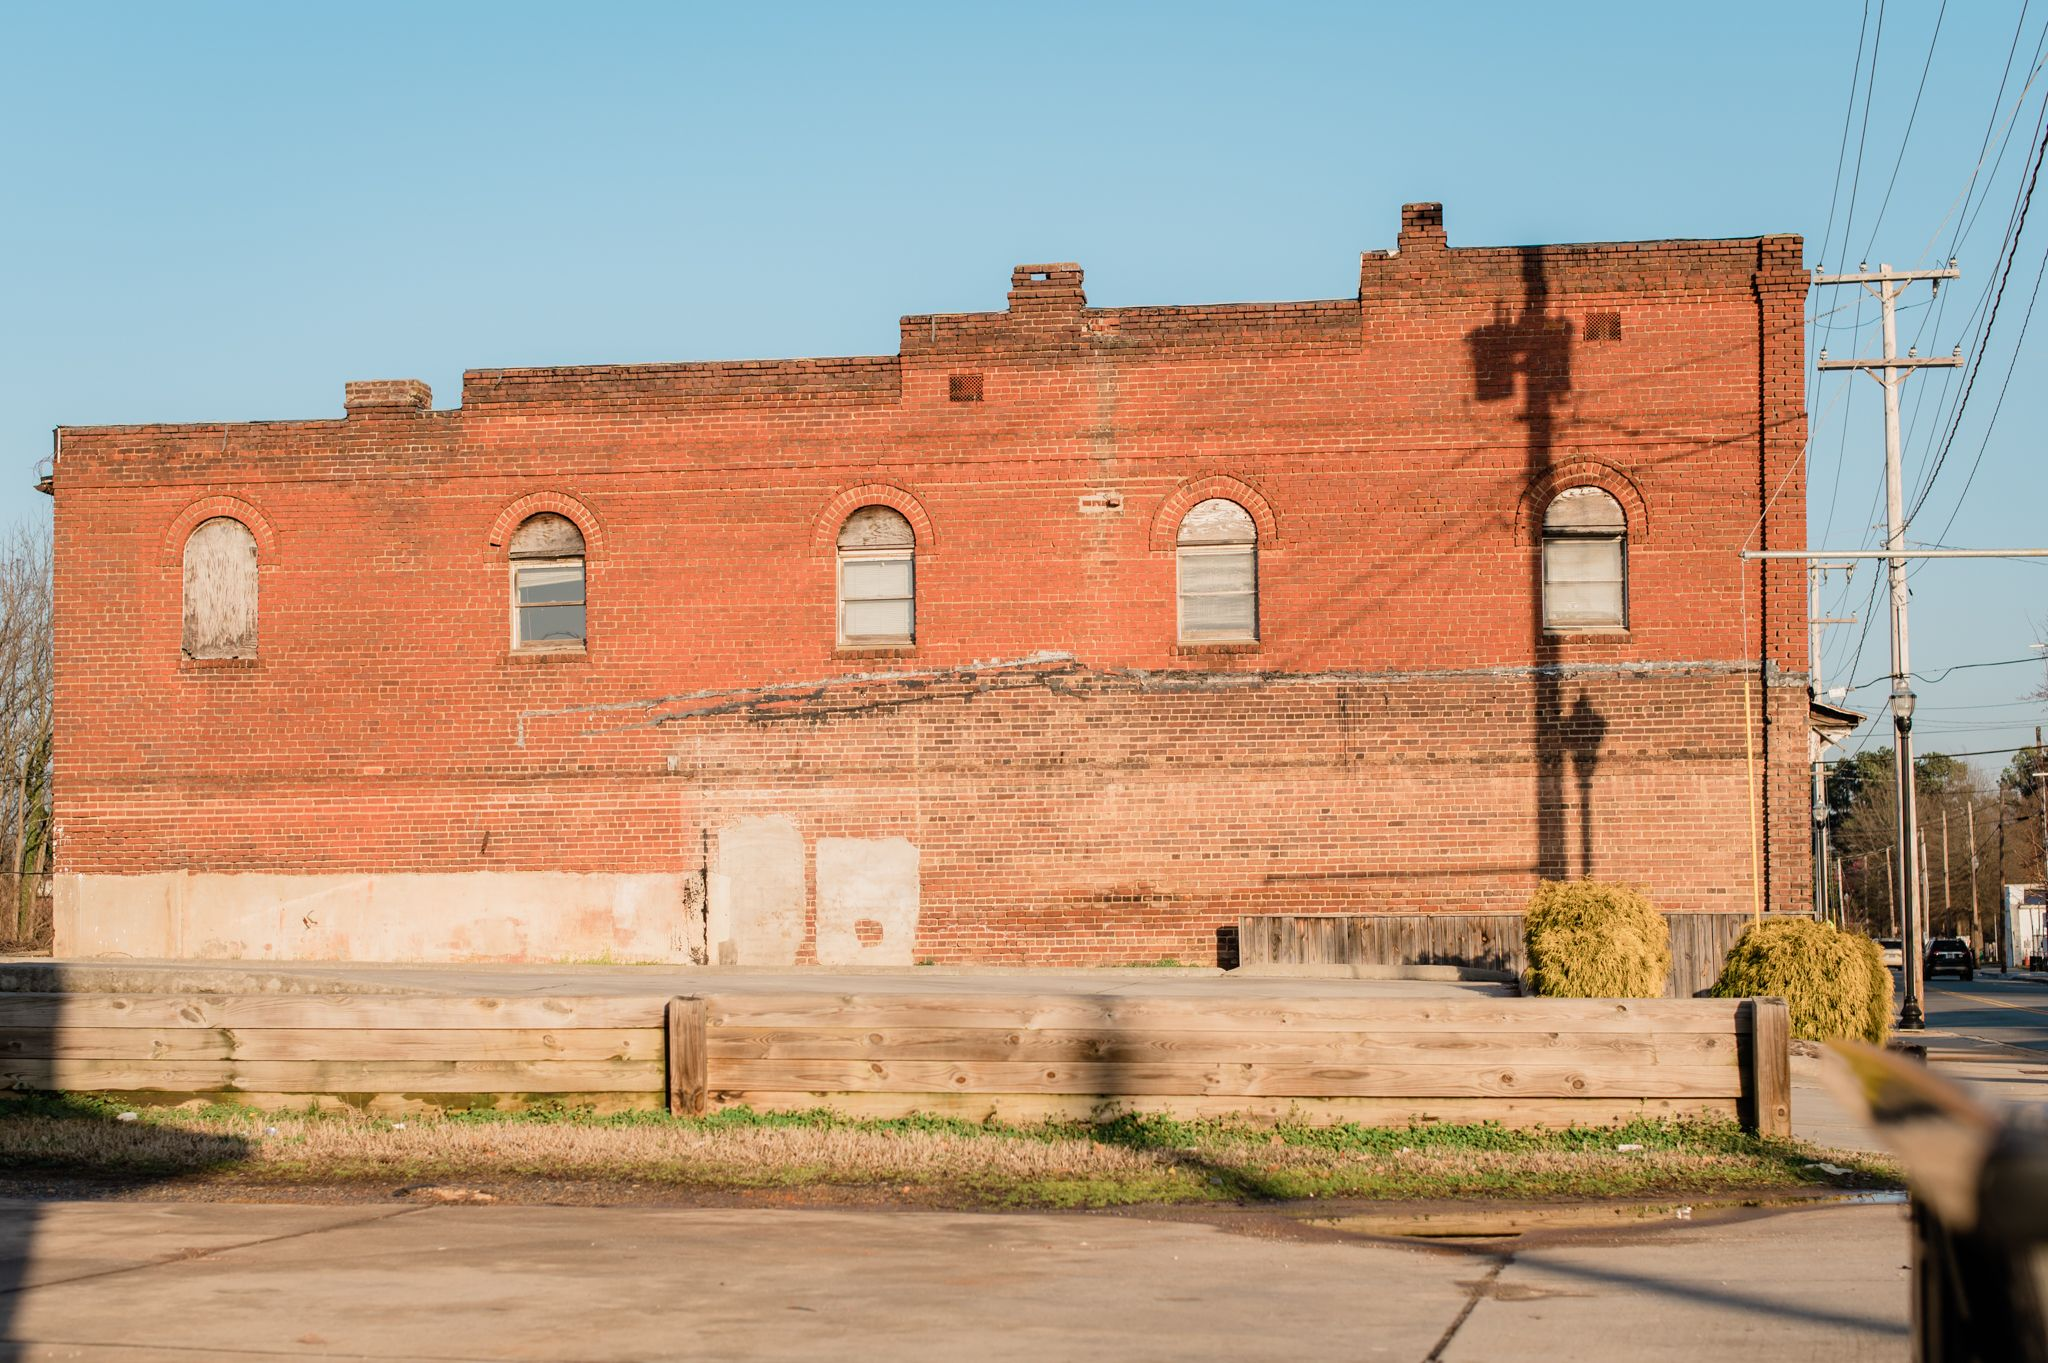 The vacant lot of the Kilby Arcade Building where the Kilby Hotel once stood in High Point, NC.